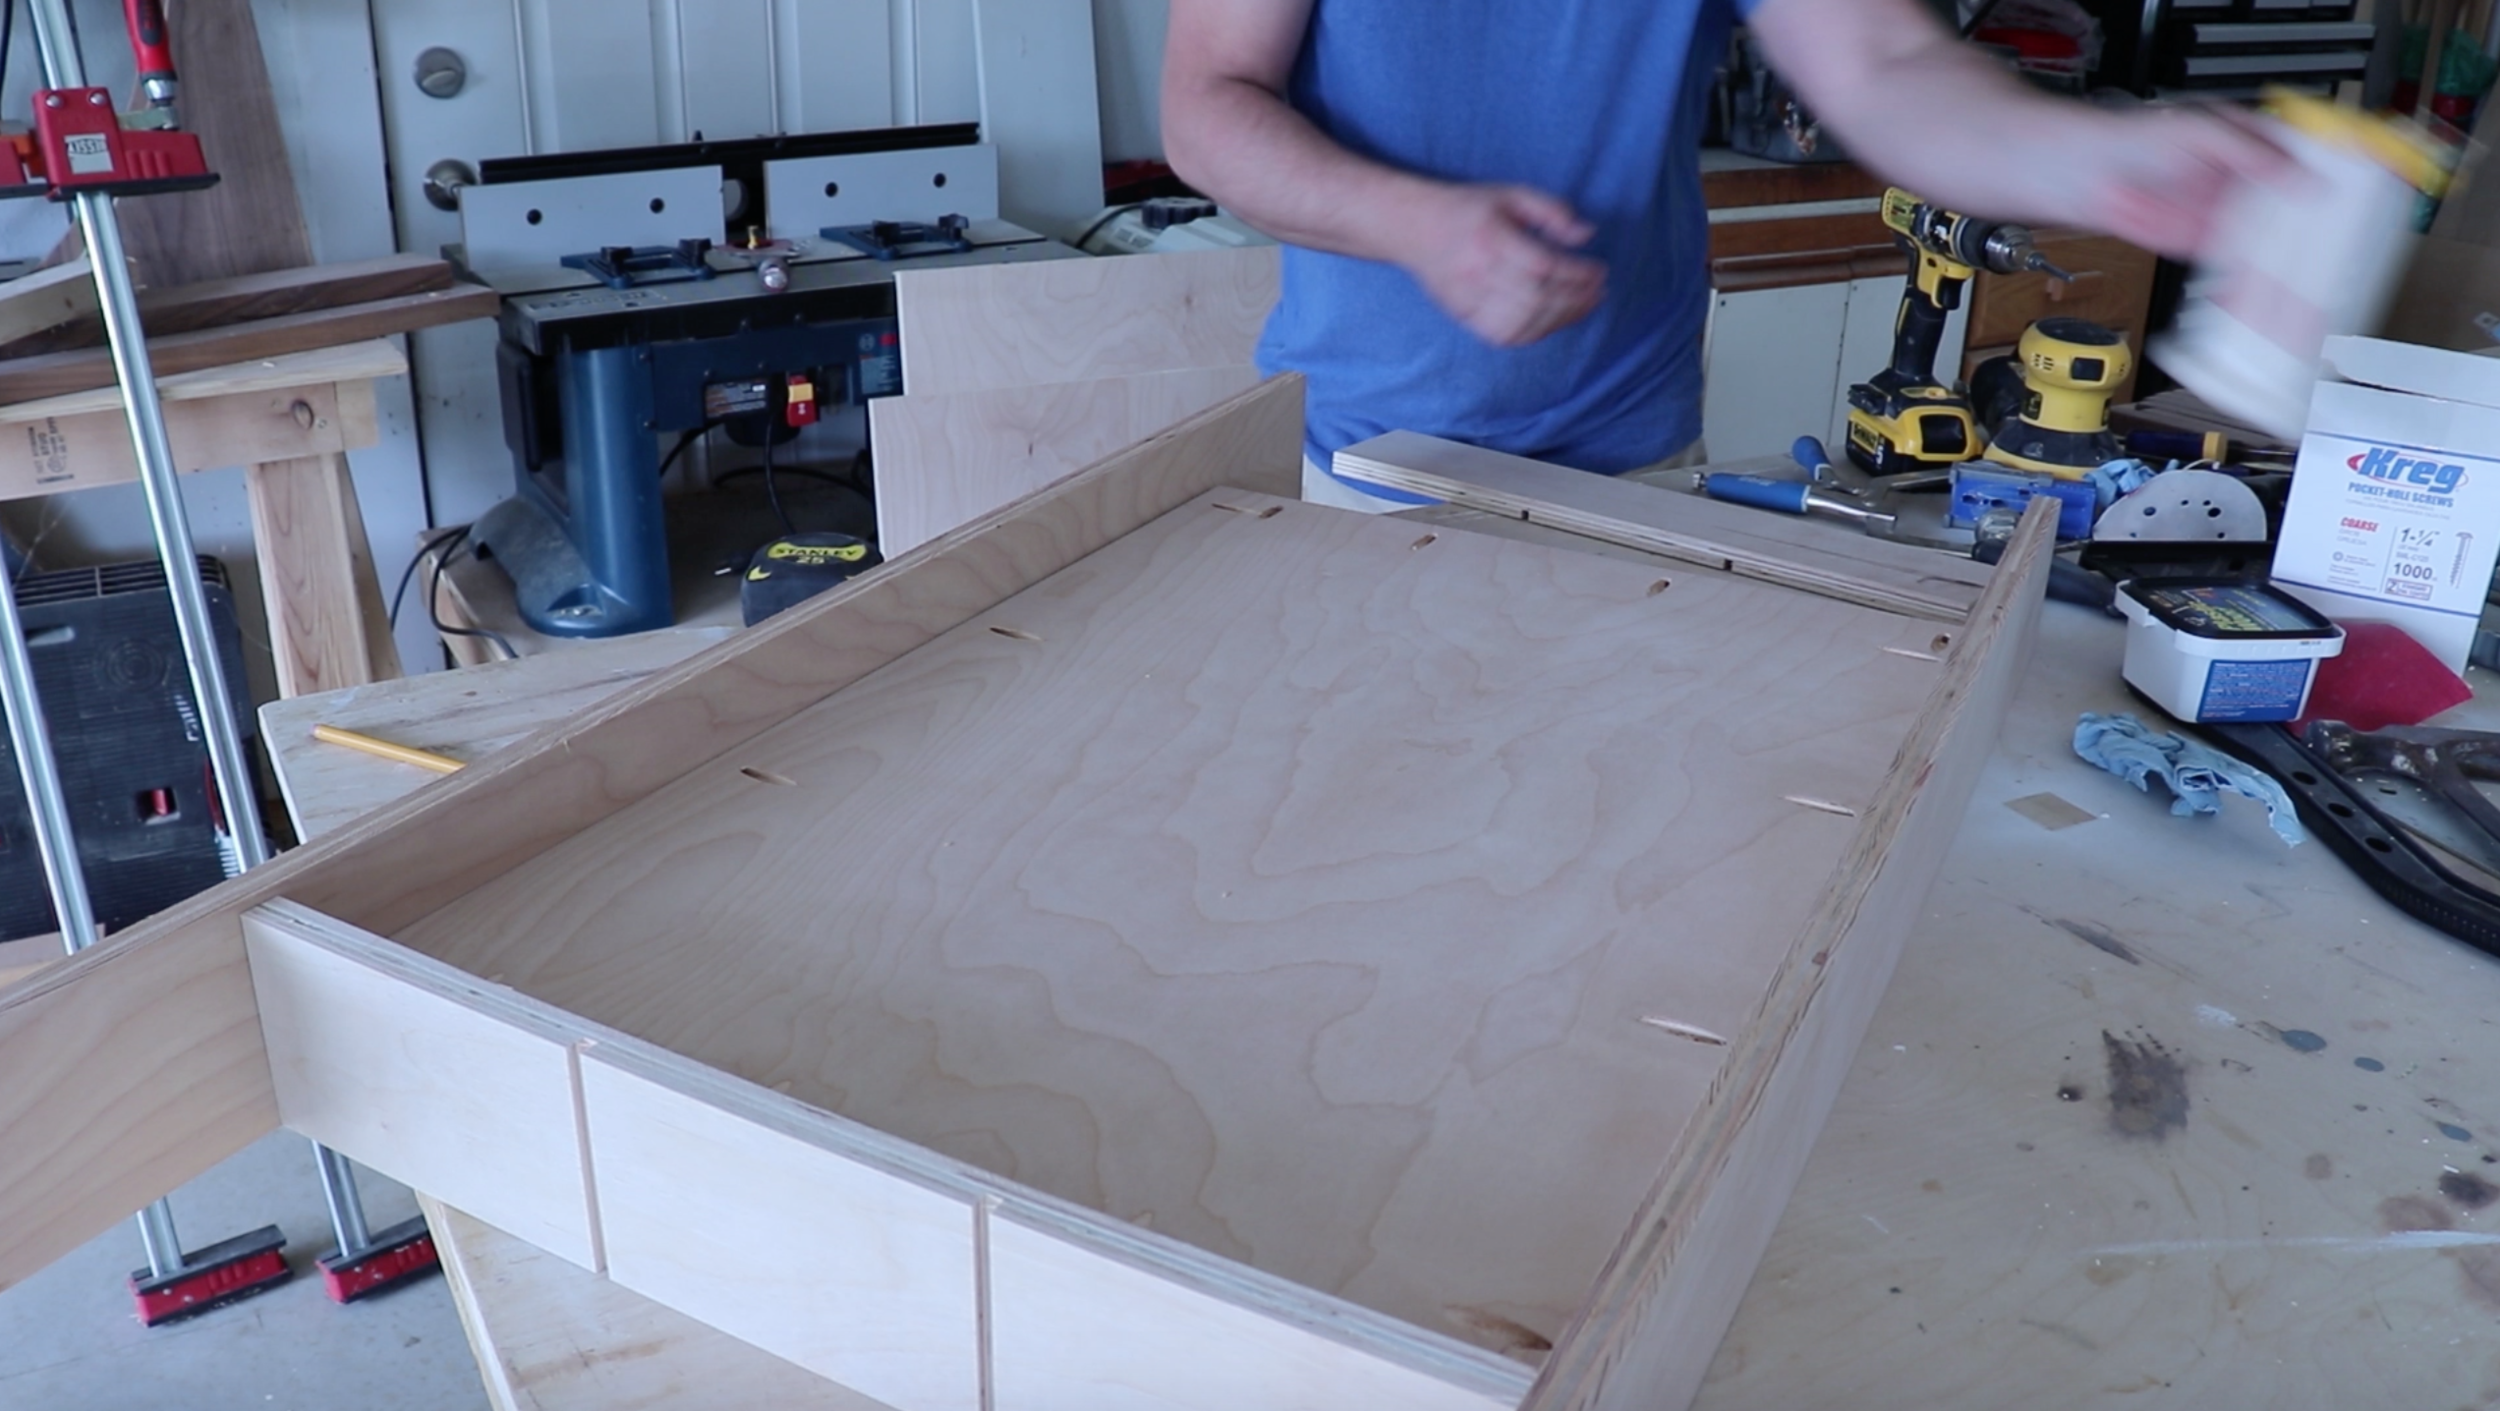 Installing the sides to the Lego table using a Kreg Jig R3 - Philip Miller Furniture - Etsy